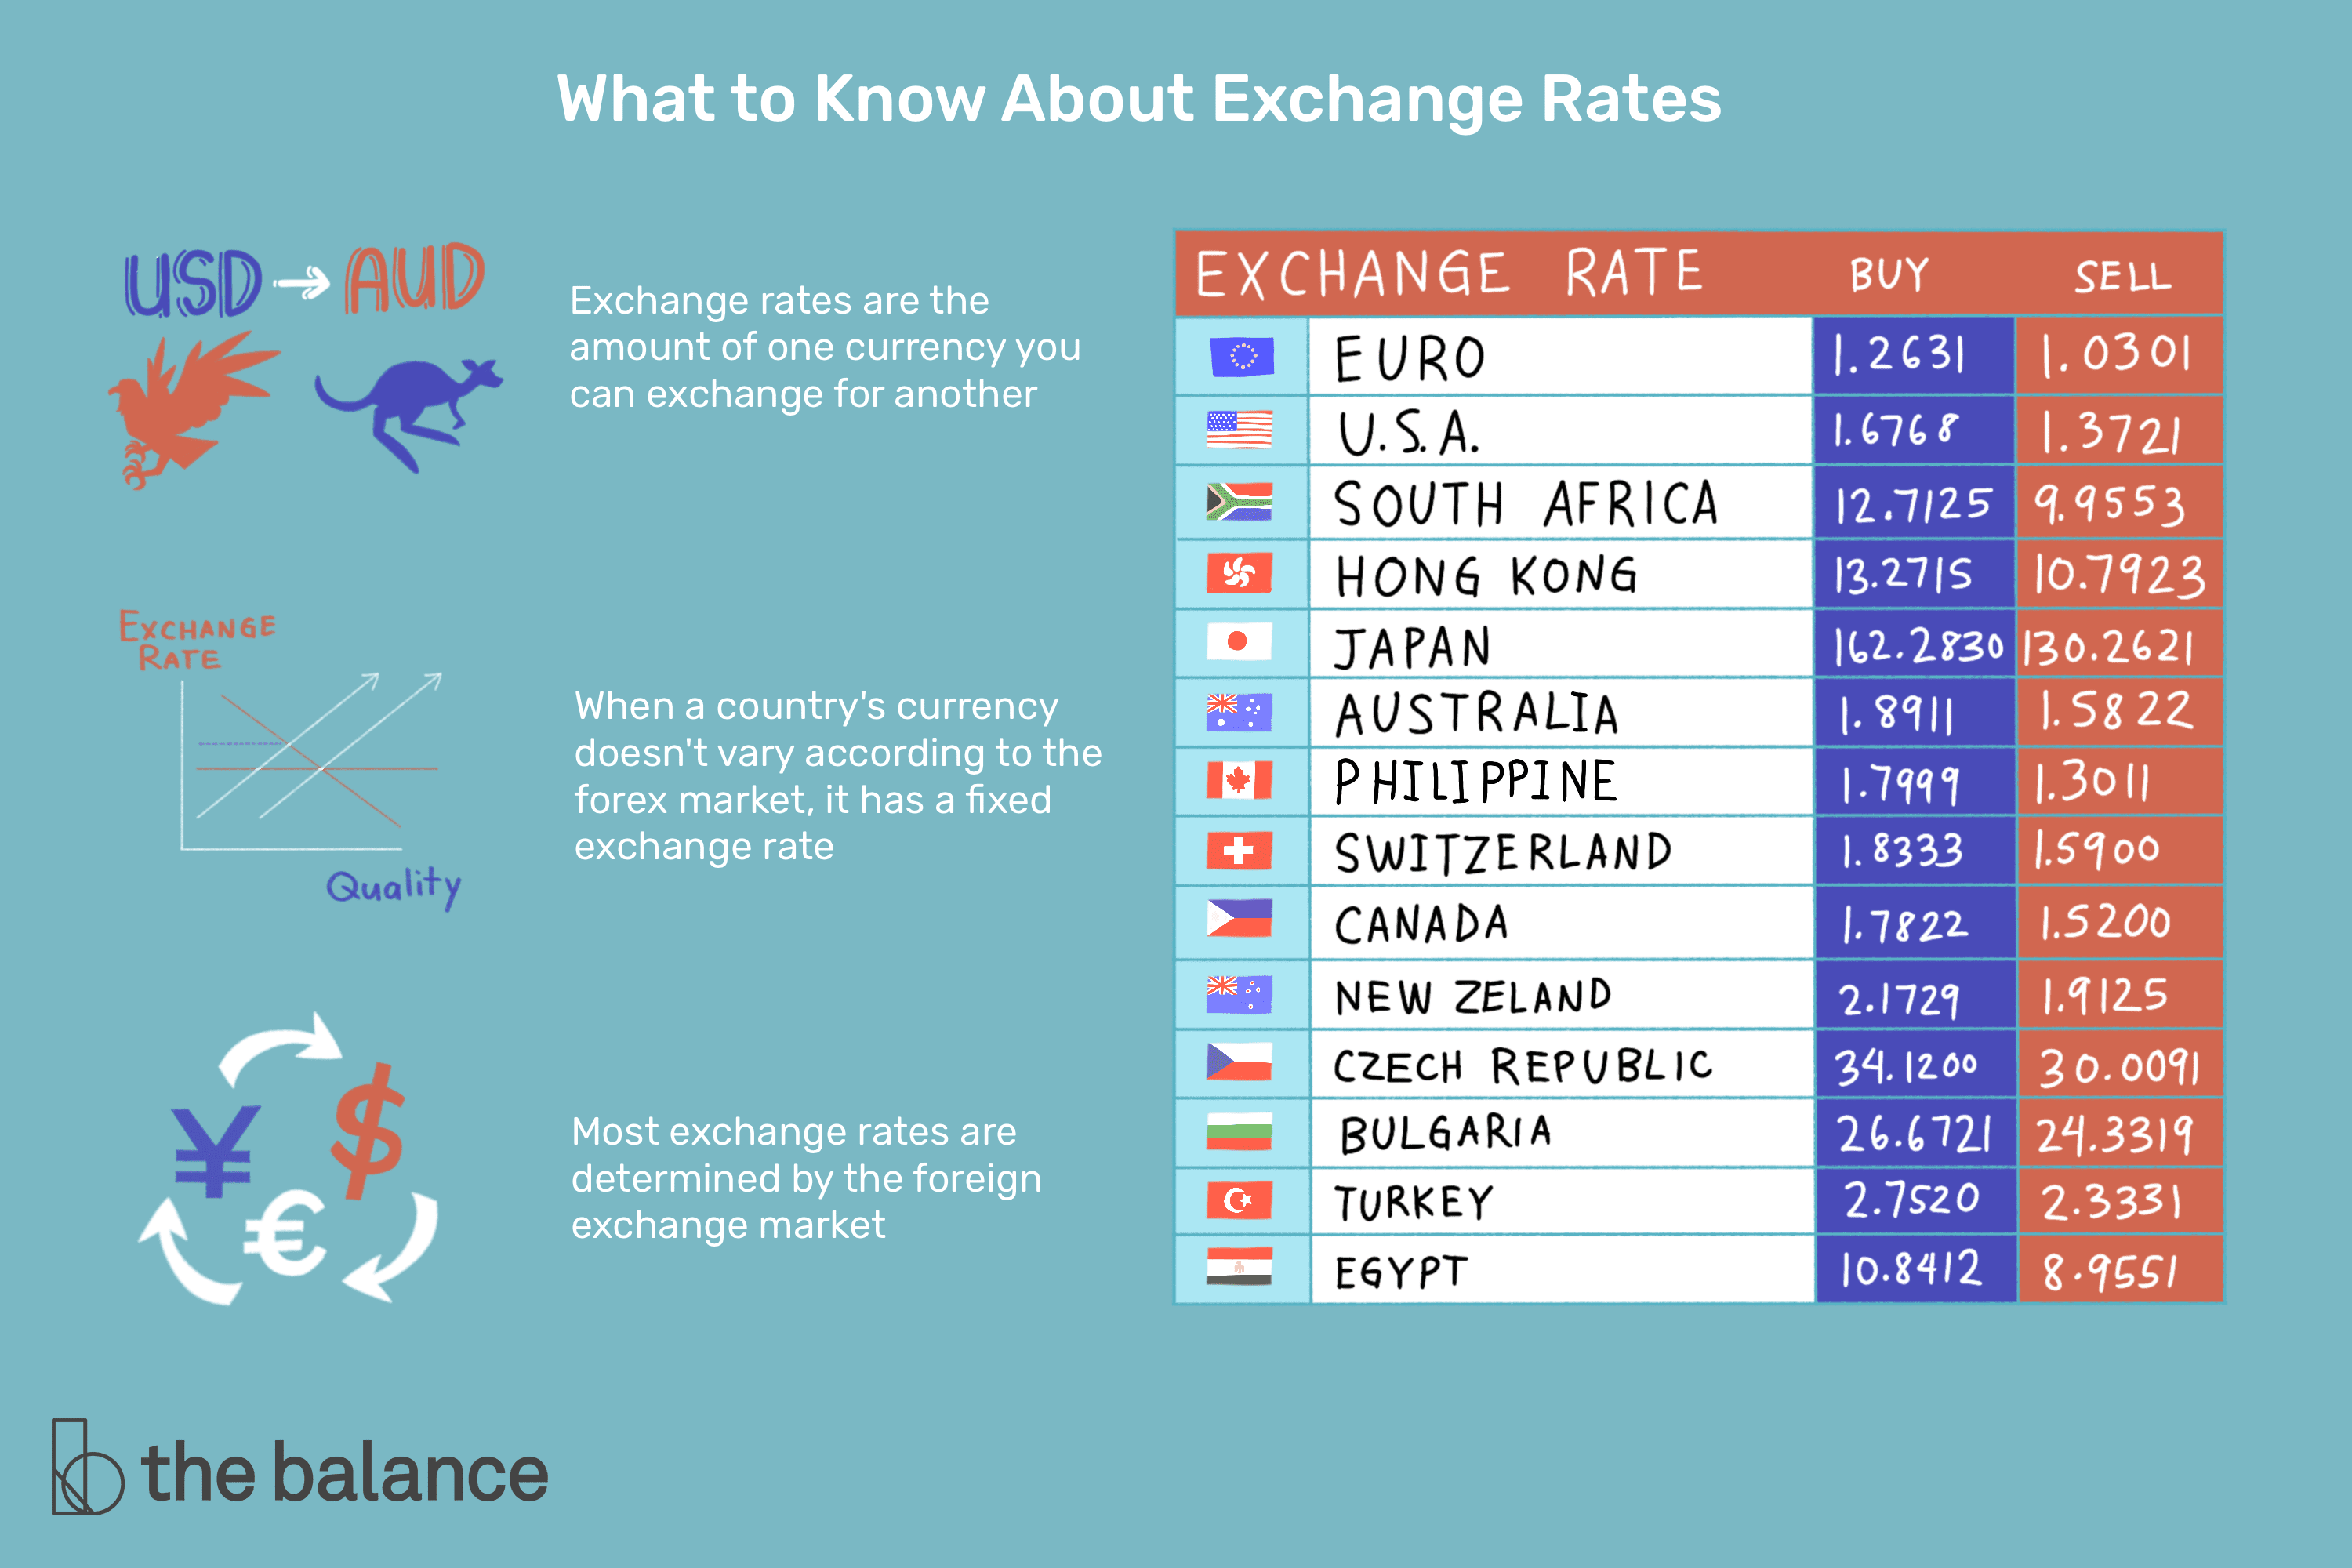 Currency currency exchange exchange foreign forextrading system.com cc vest norway